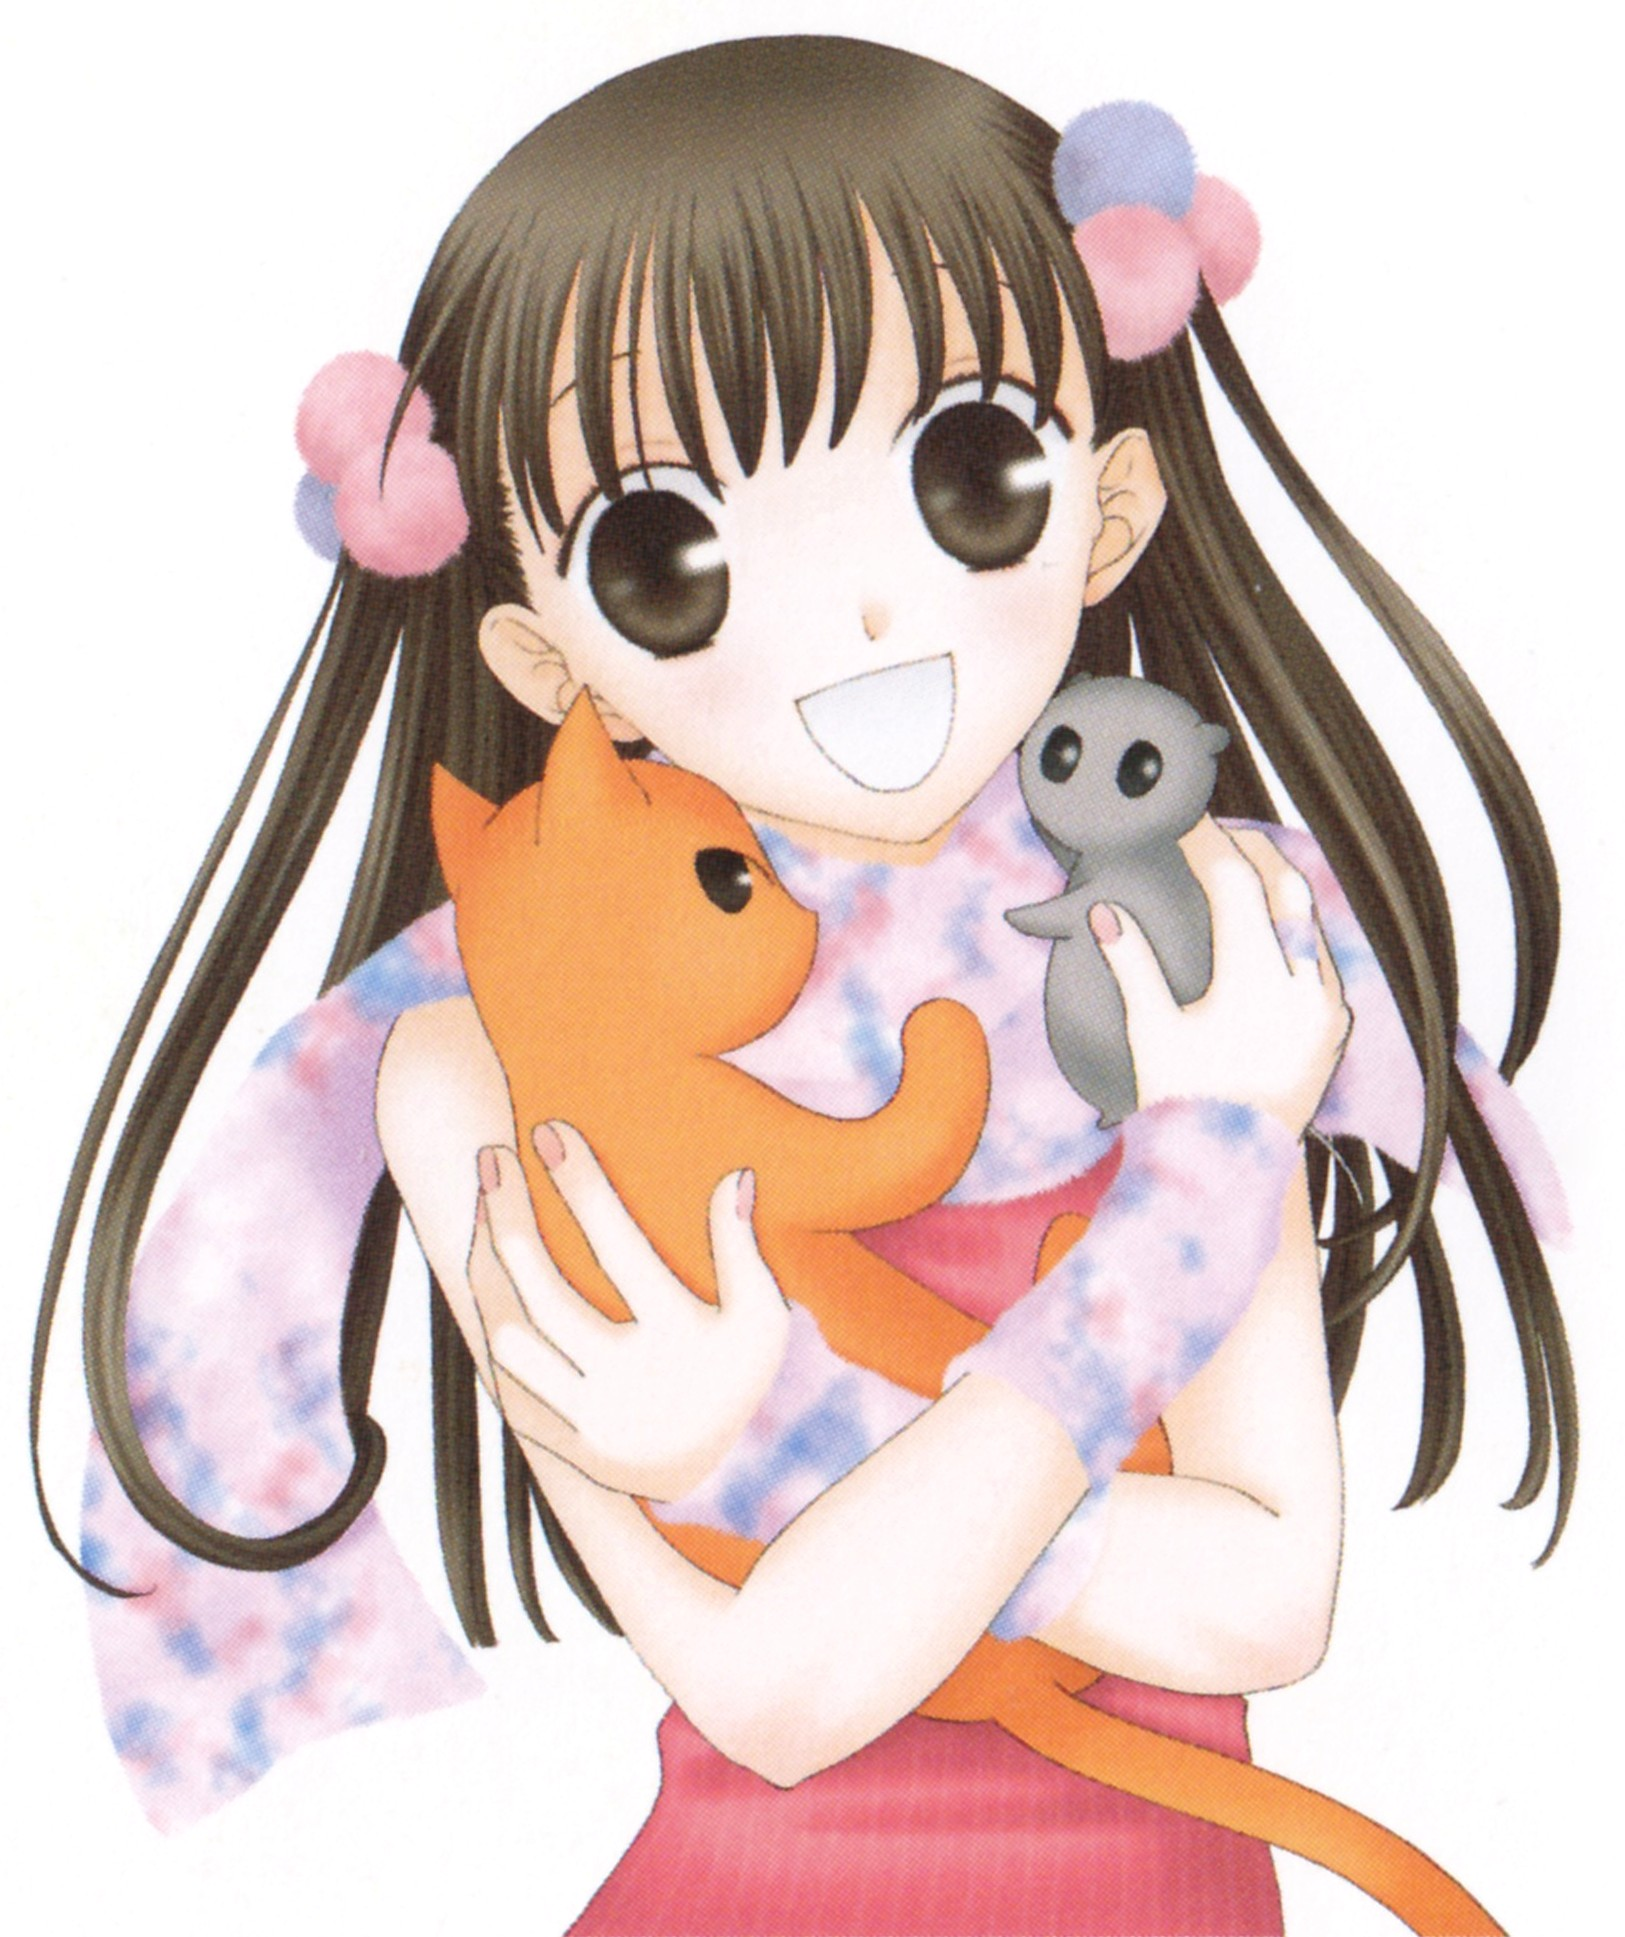 Fruits Basket - Wikipedia Fruits basket characters with pictures